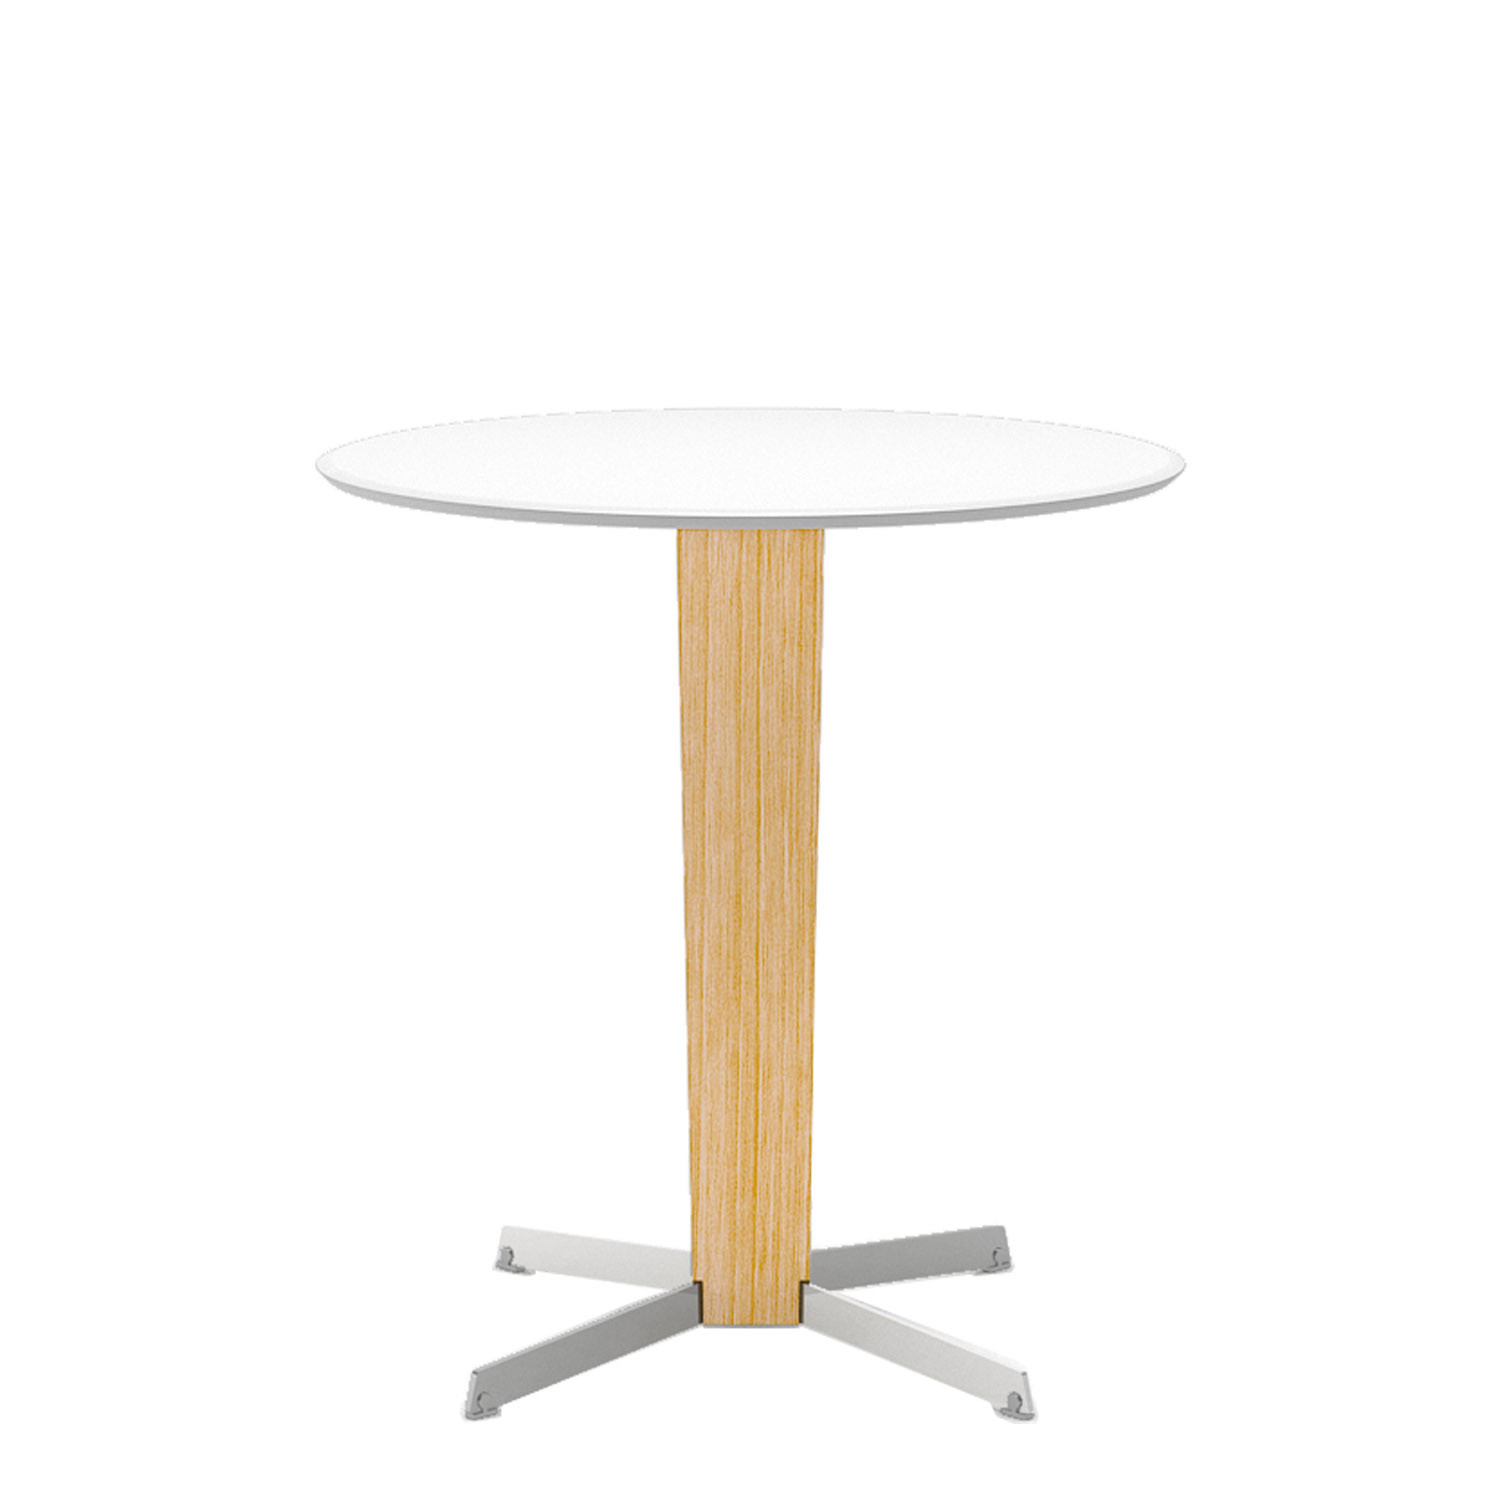 Retro Round Dining Tables